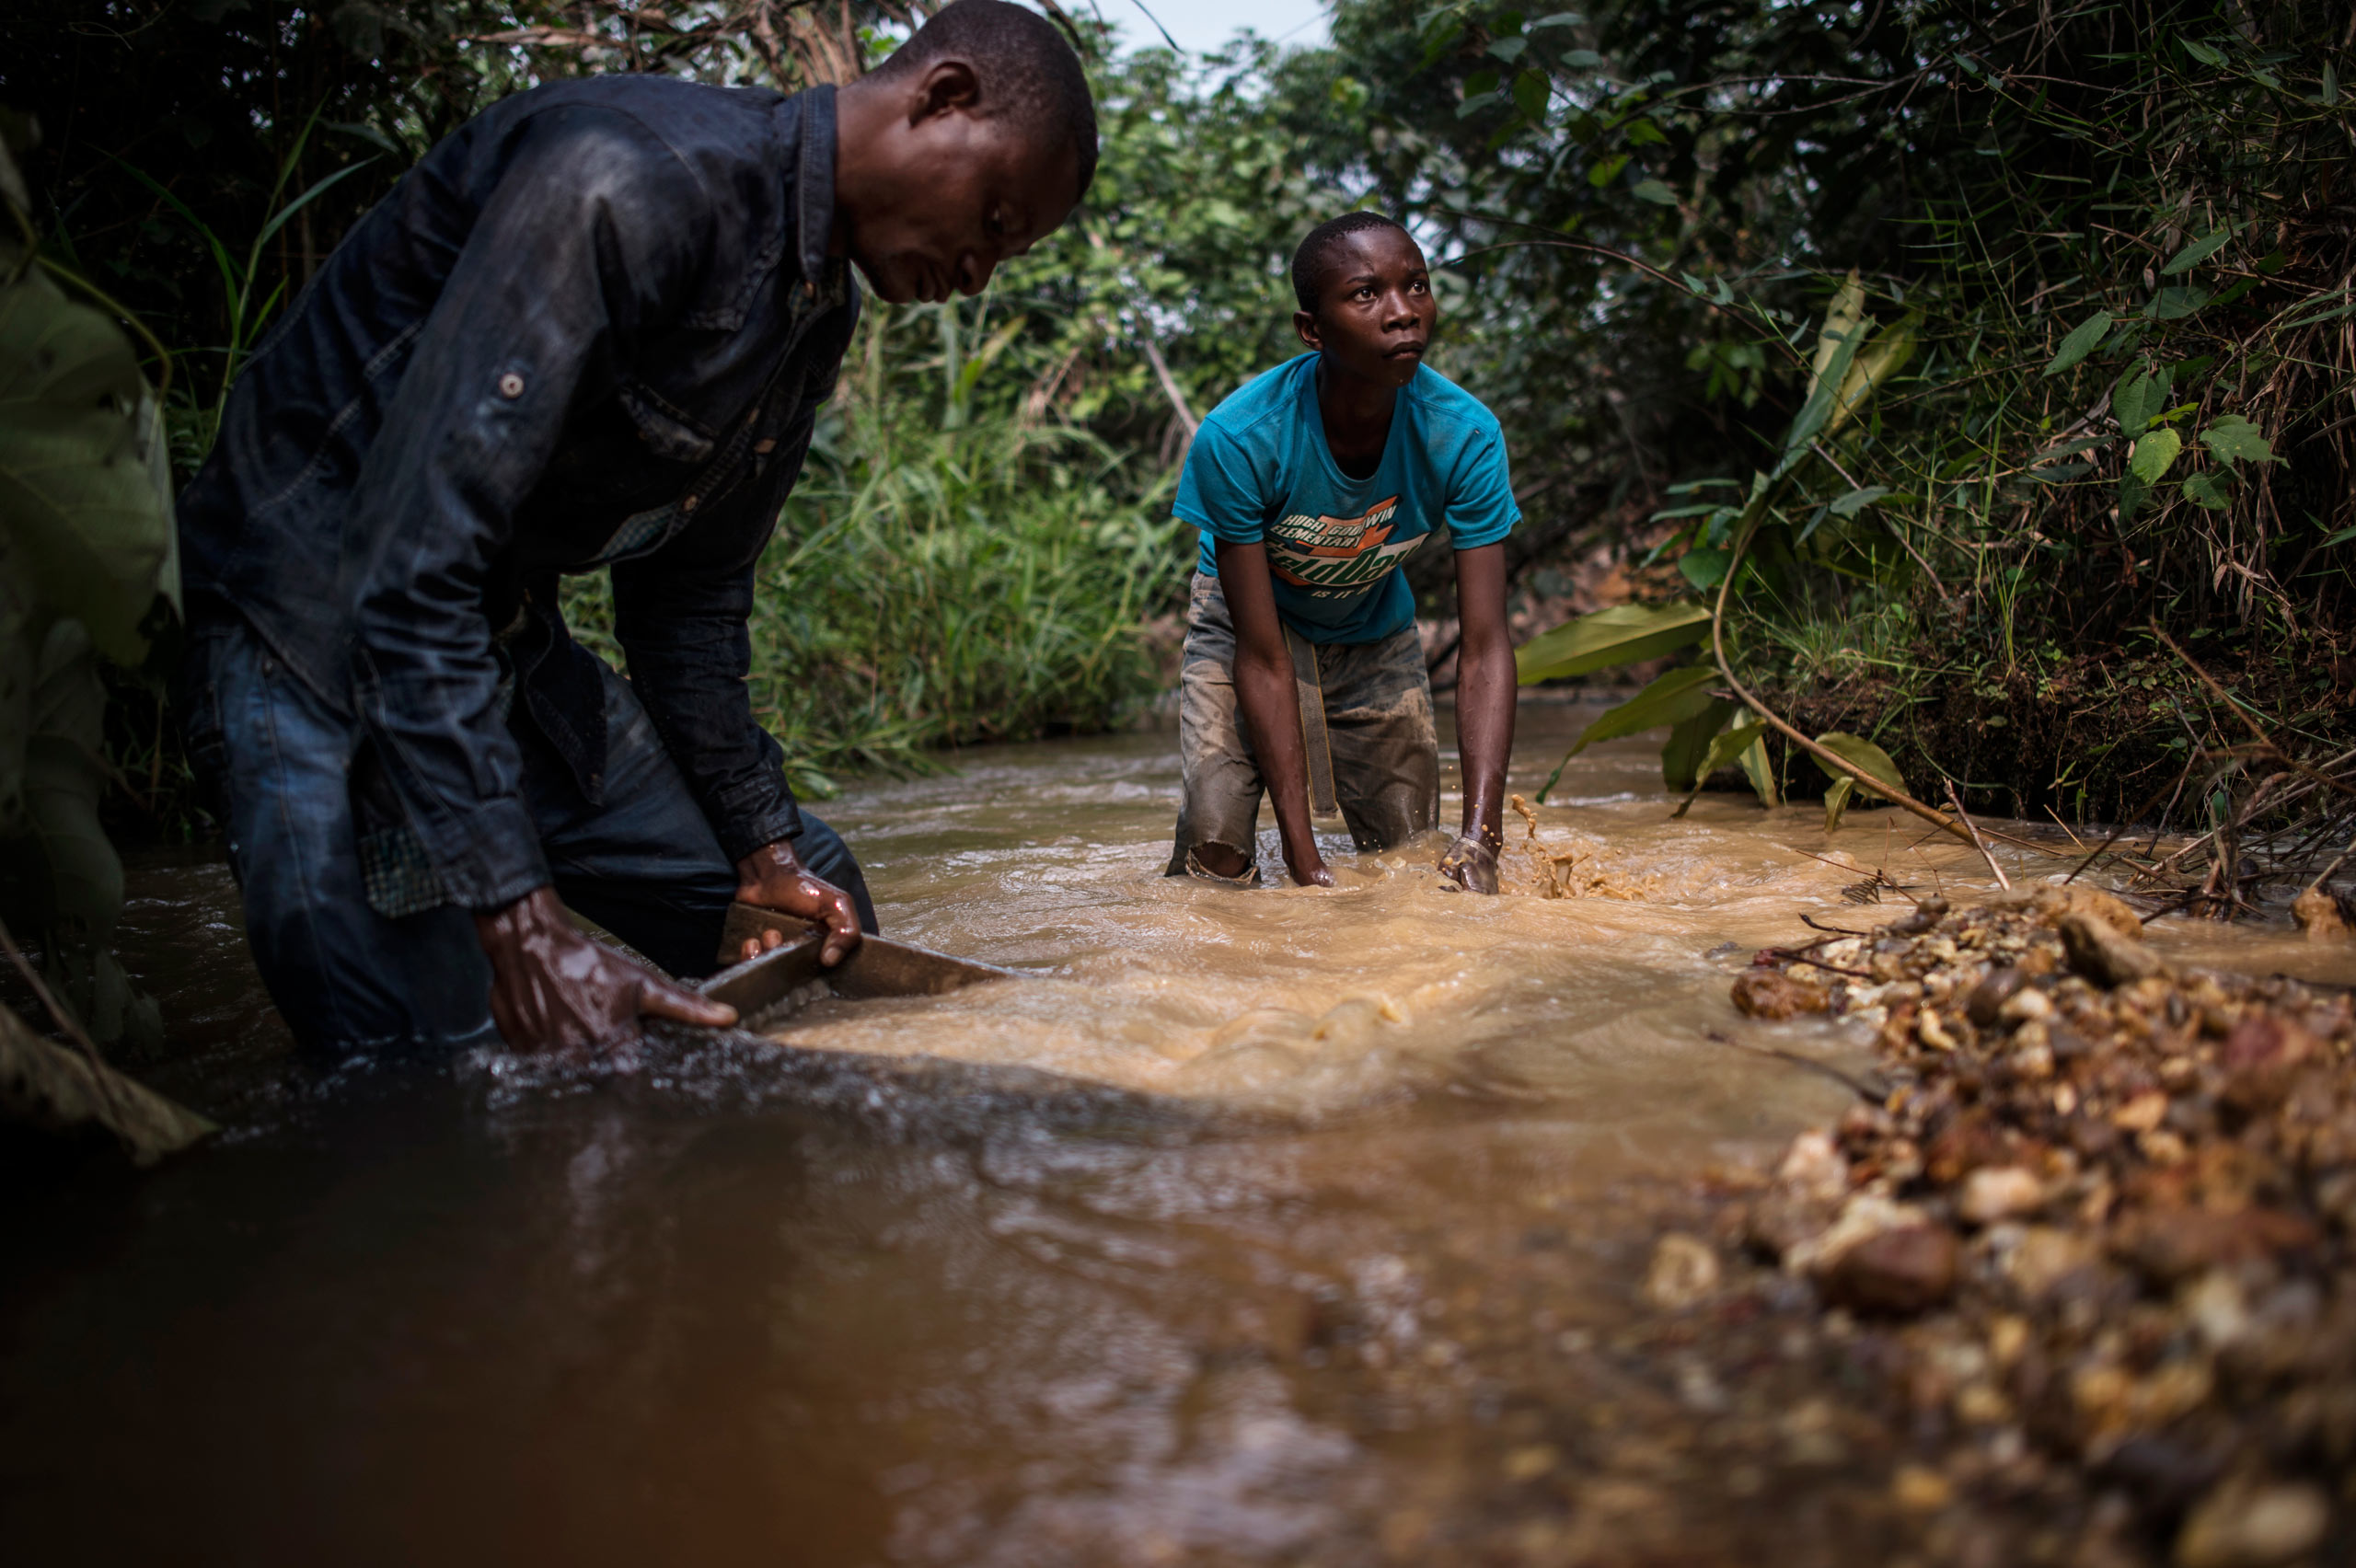 Mbuyi Mwanza, 15, spends his days shoveling and sifting gravel in the small artisanal mines of southwest Democratic Republic of Congo, Aug. 9, 2015.